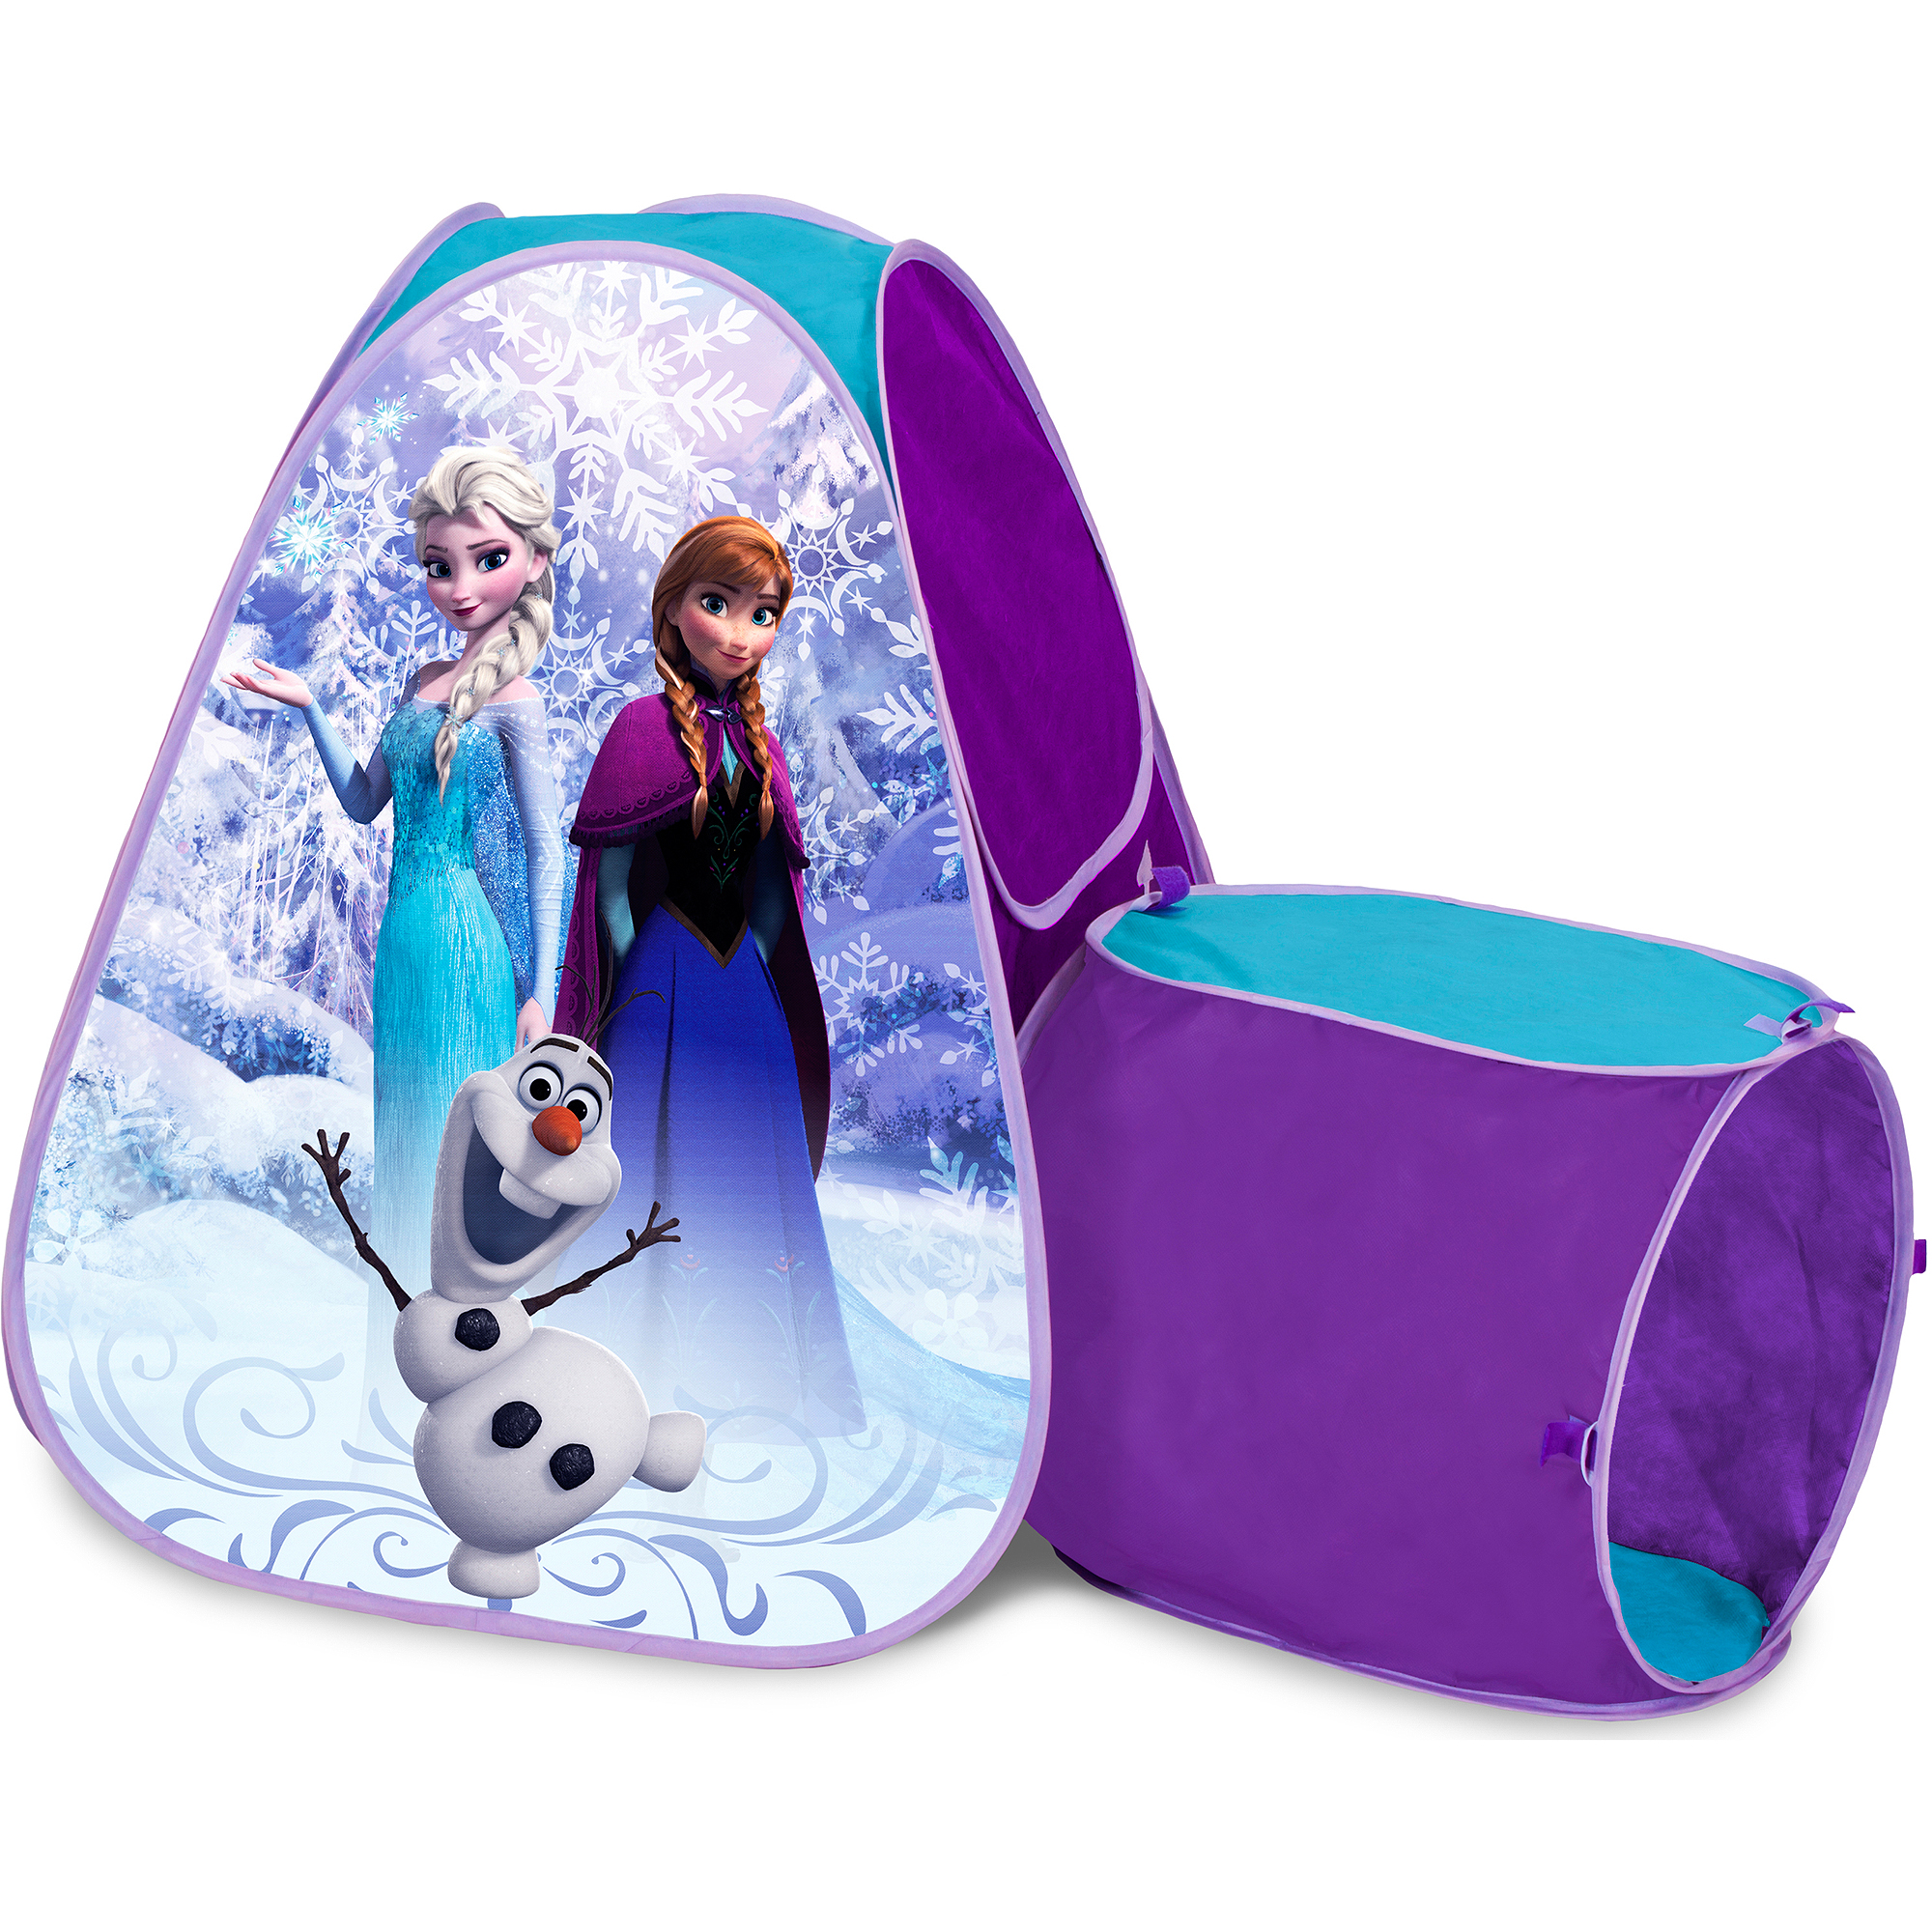 sc 1 st  Walmart & Disney Frozen Hide About Play Tent - Walmart.com